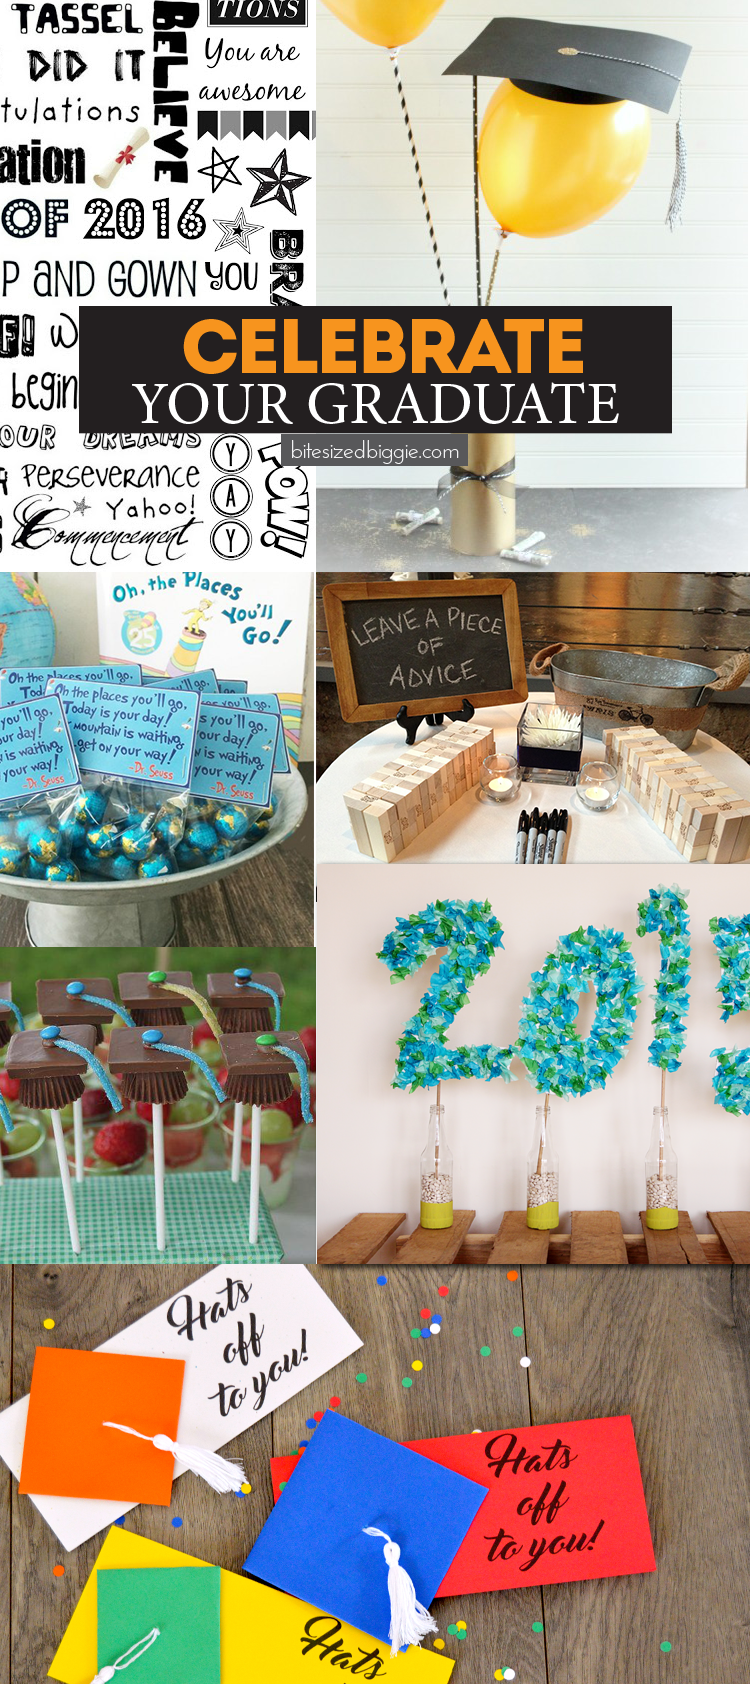 How to celebrate your graduate! Great ideas for gradution gifts and parties!